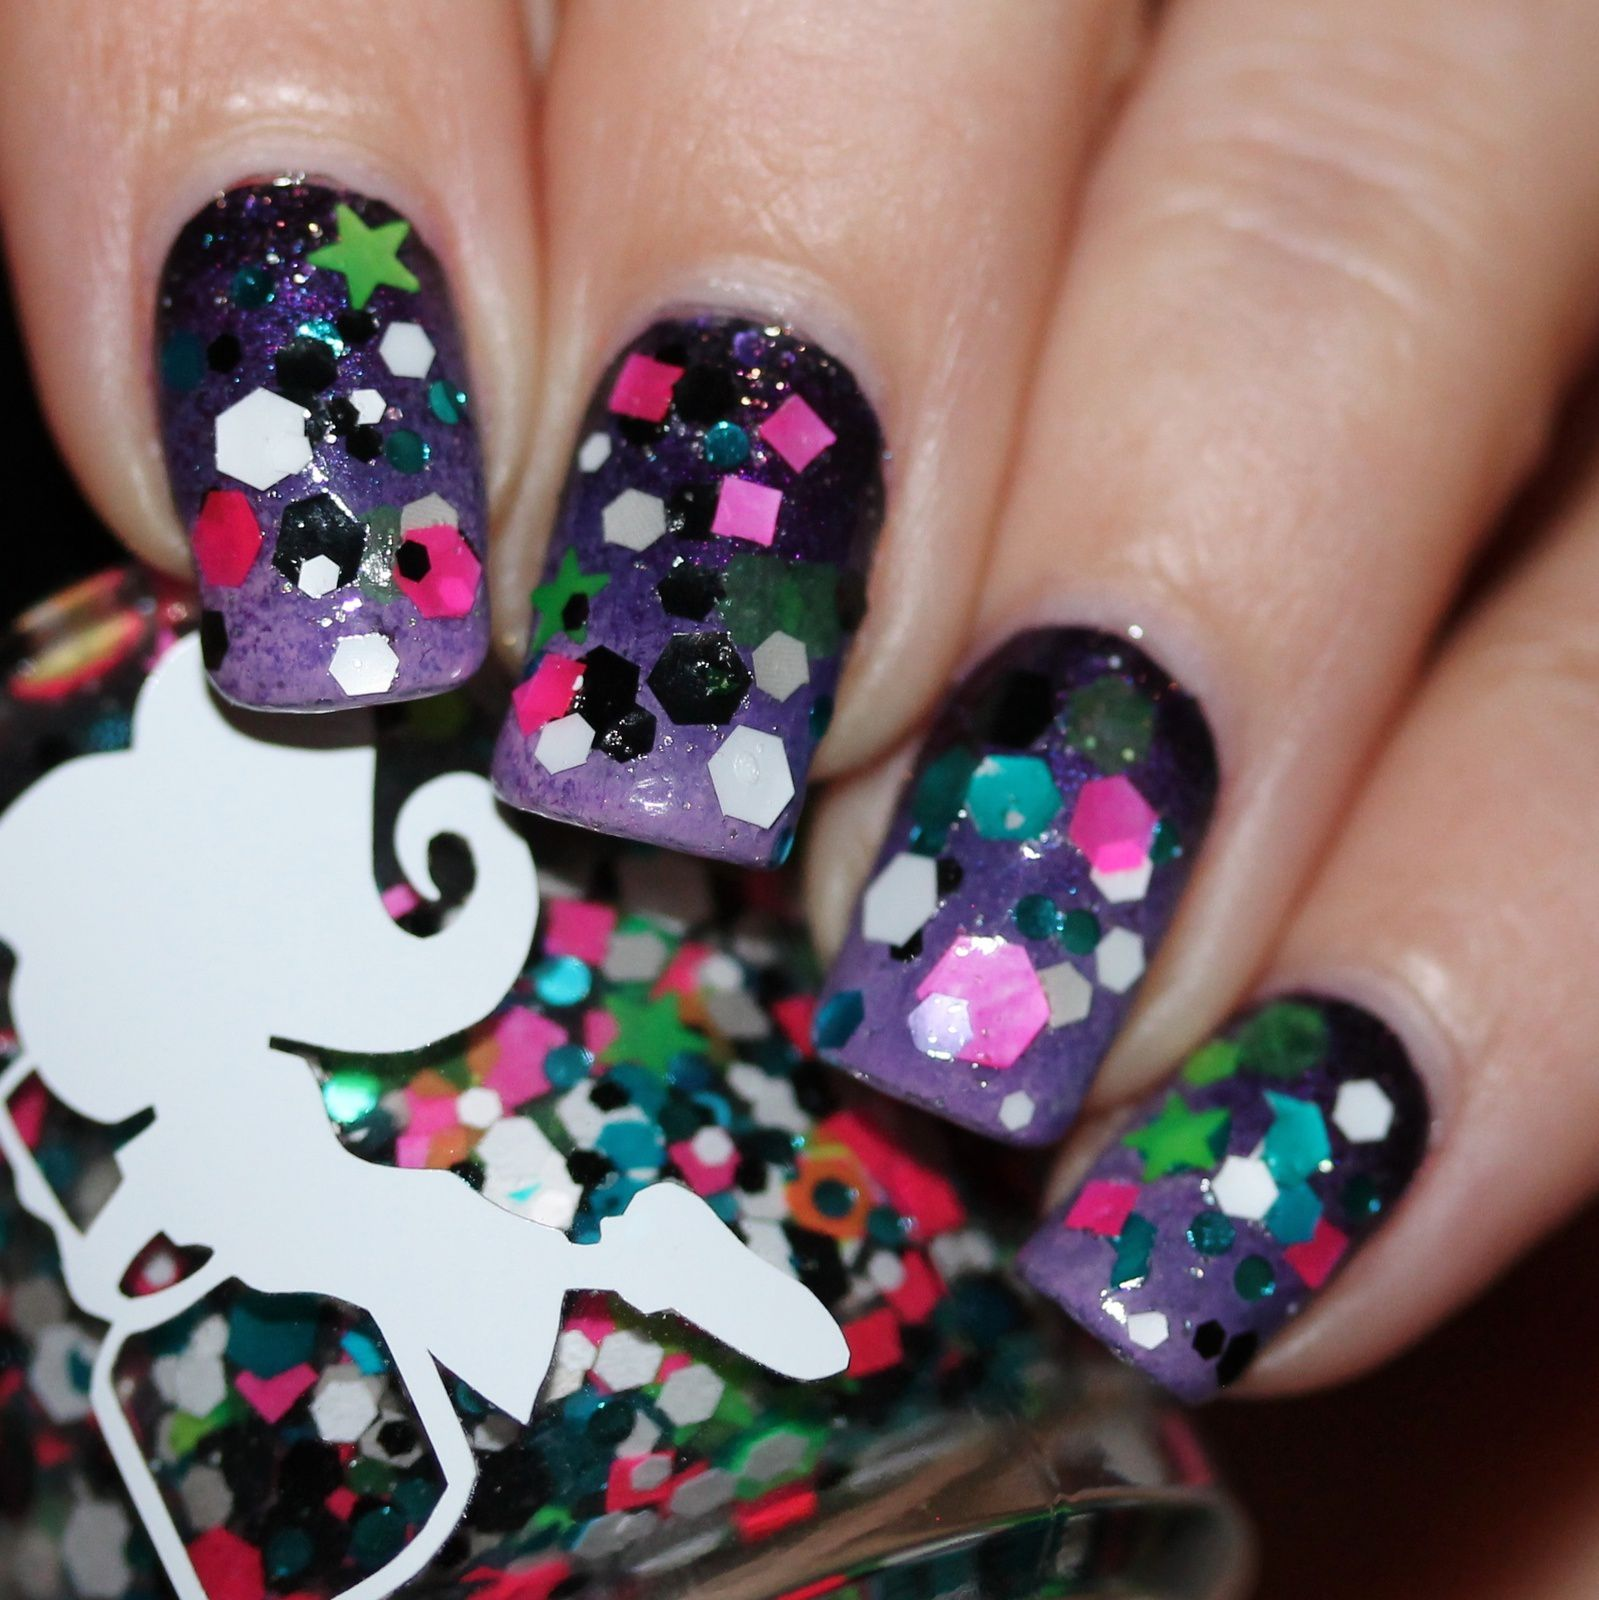 Duri Rejuvacote / Purple Gradient / A Girl Obsessed Frankie Stein / Nail Pattern Boldness Glitter Food / HK Girl Top Coat